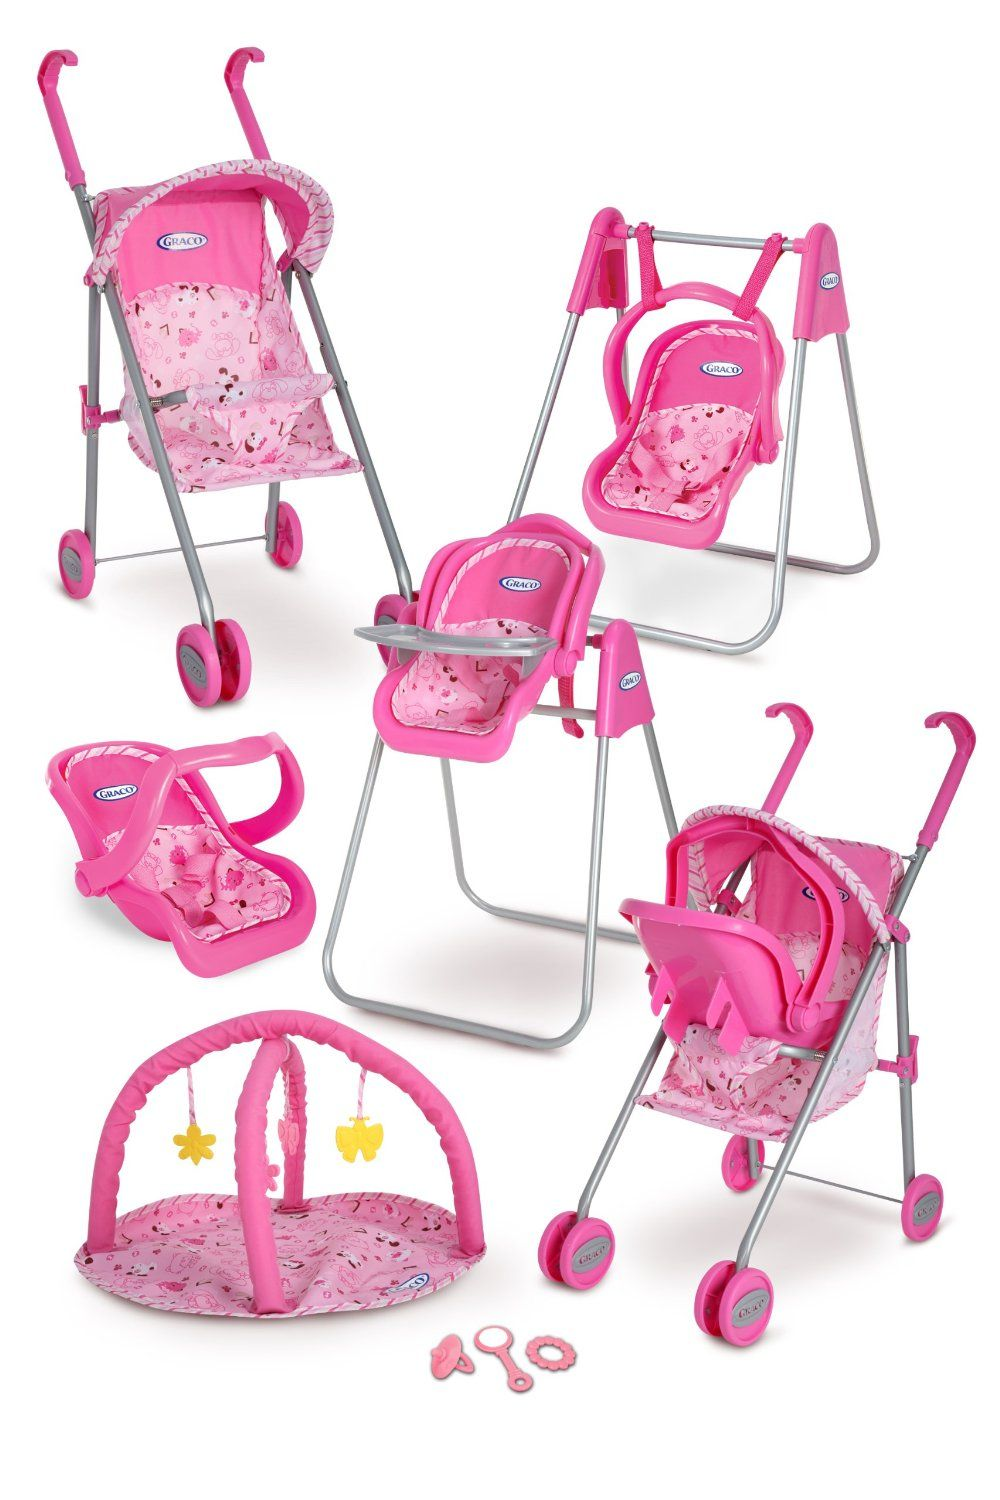 Graco Play Set Stroller with Canopy, Swing